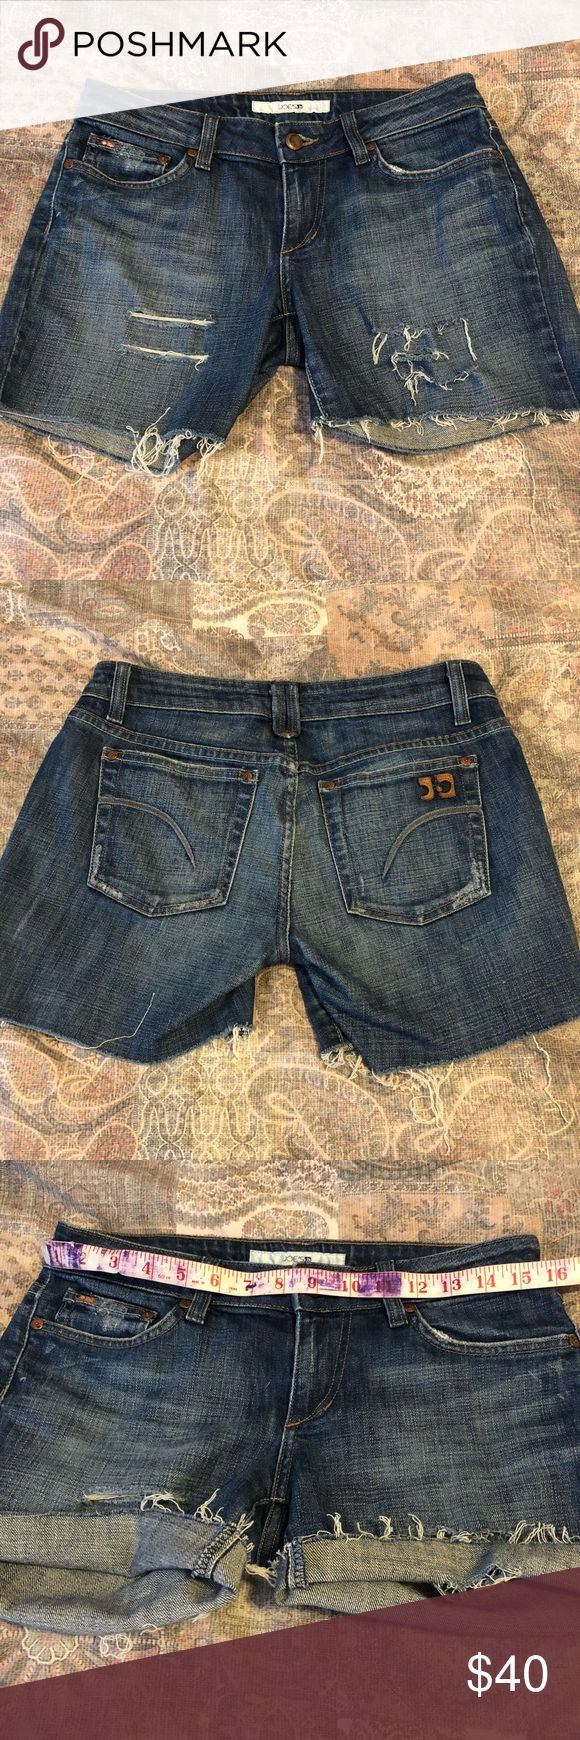 Joe's Jeans Cutoff Jean Shorts Excellent used condition! Size 28. See photos for measurements. Absolutely NO TRADES Joe's Jeans Shorts Jean Shorts